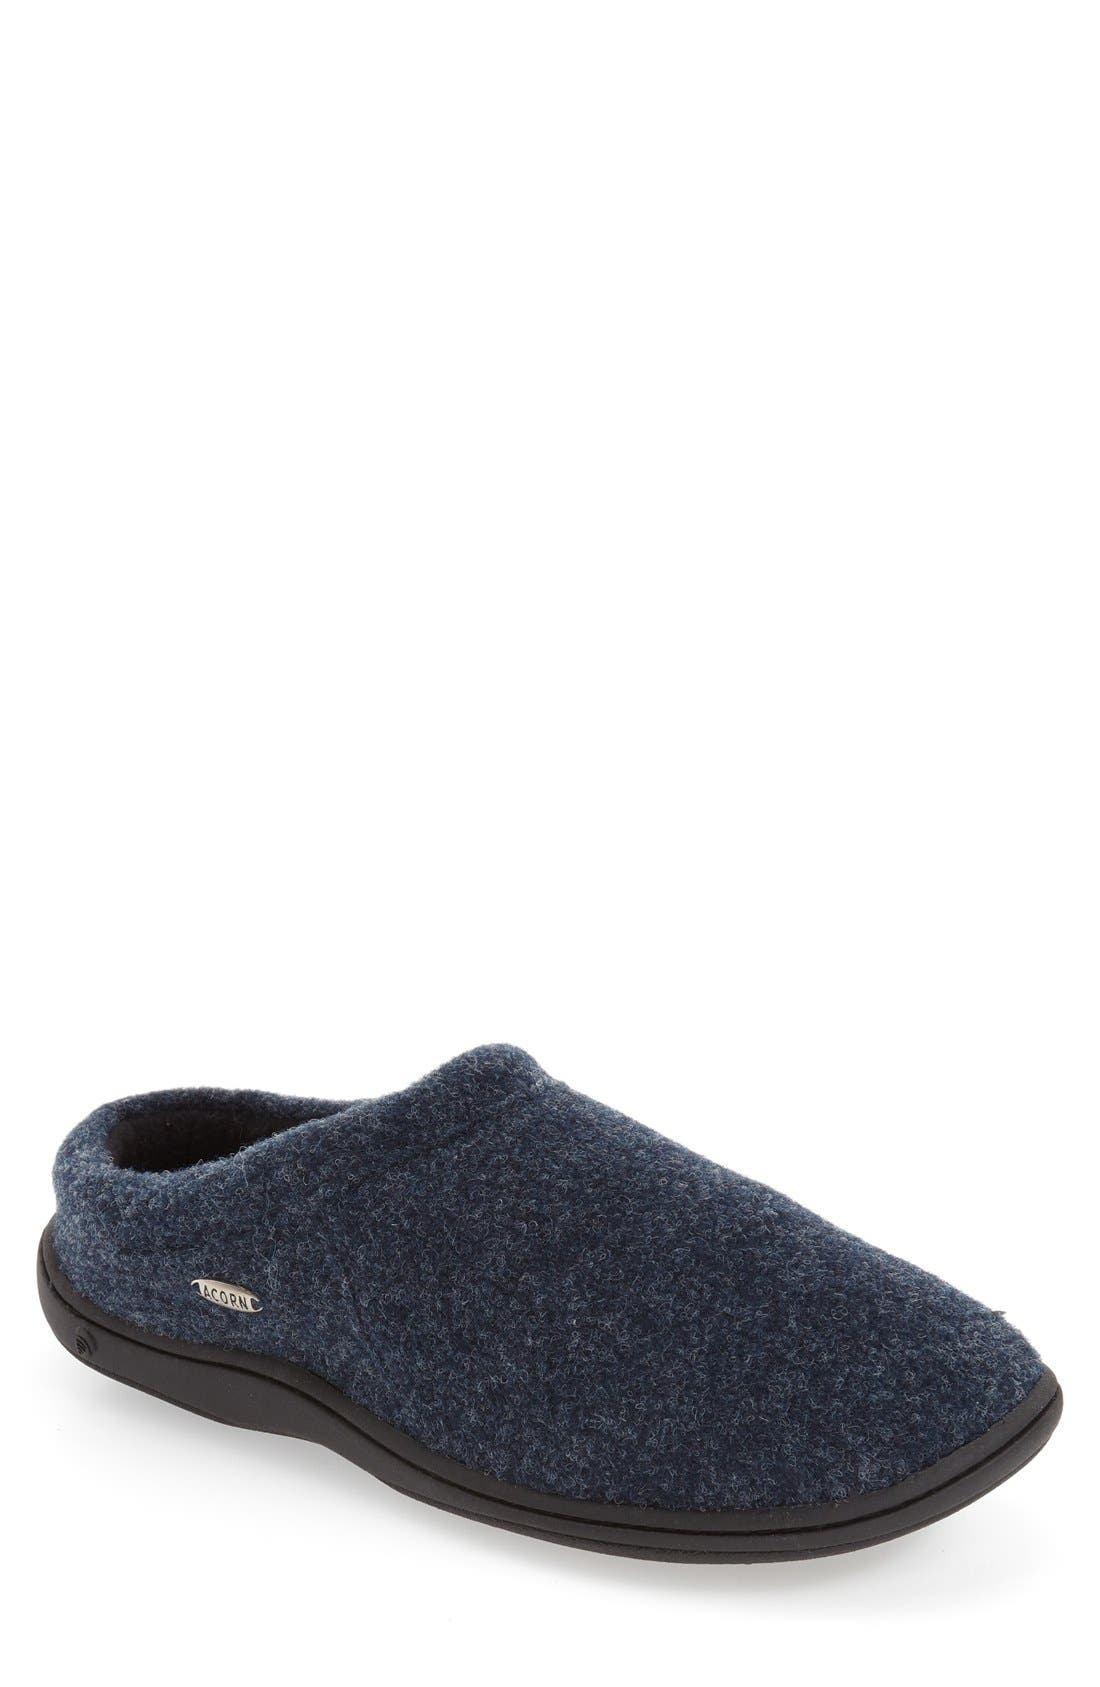 Alternate Image 1 Selected - Acorn 'Digby' Slipper (Men)